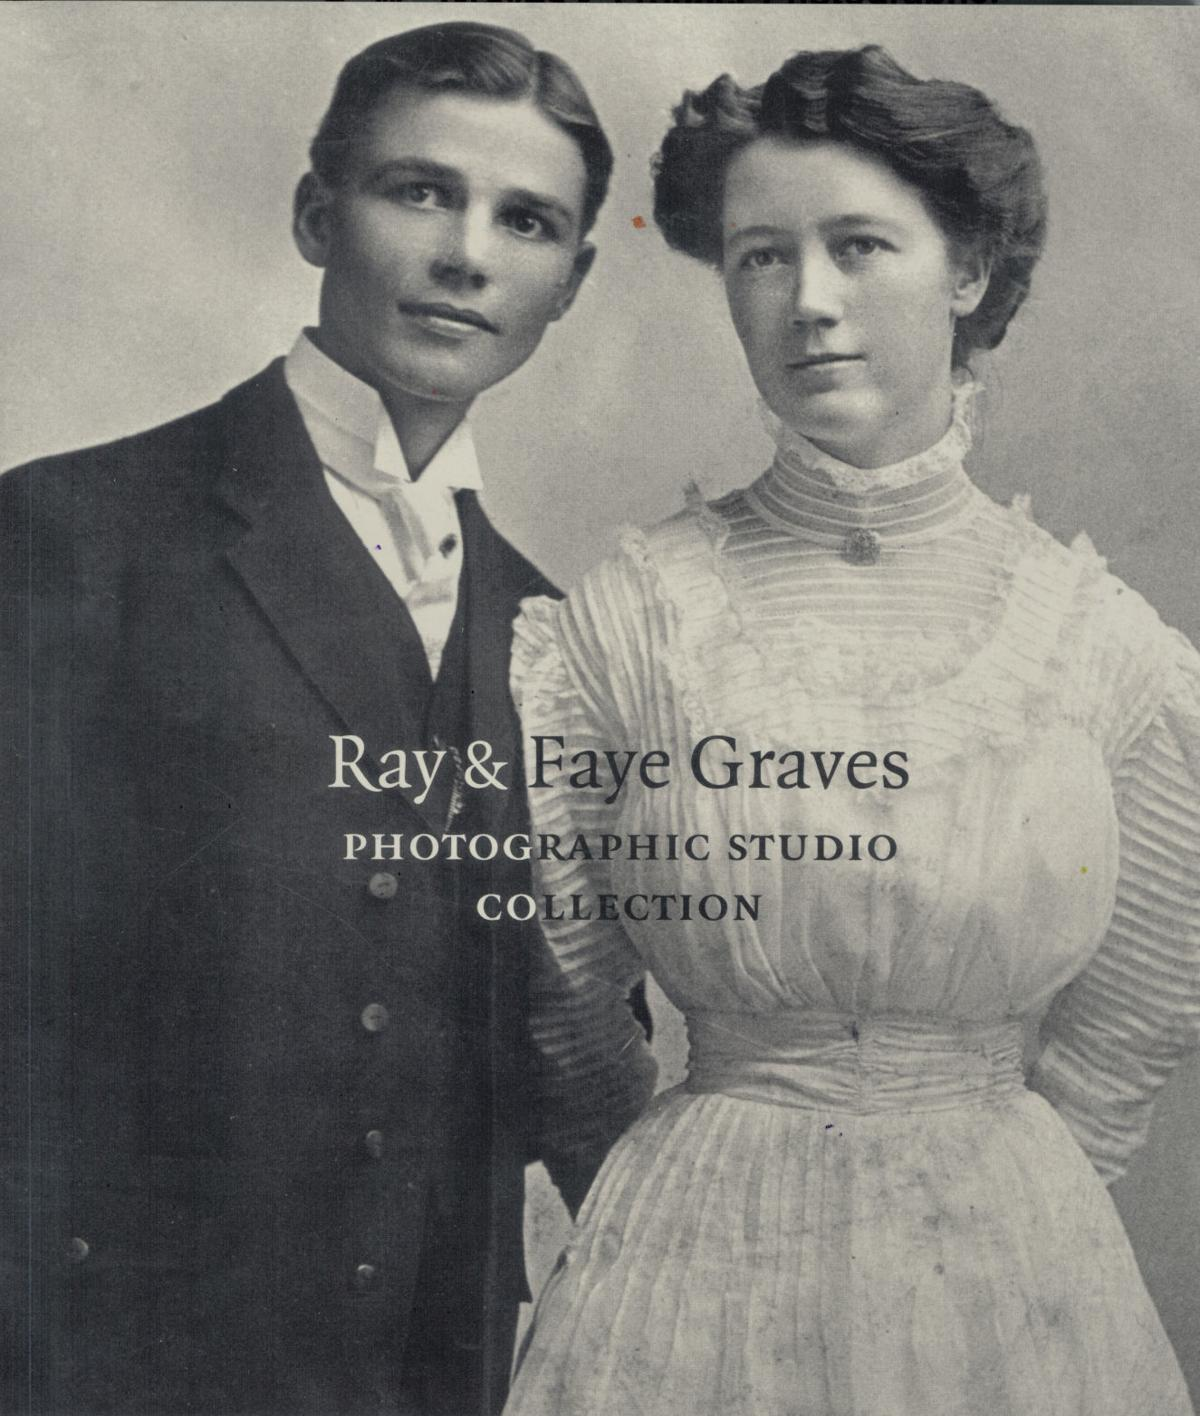 Ray and Faye Graves